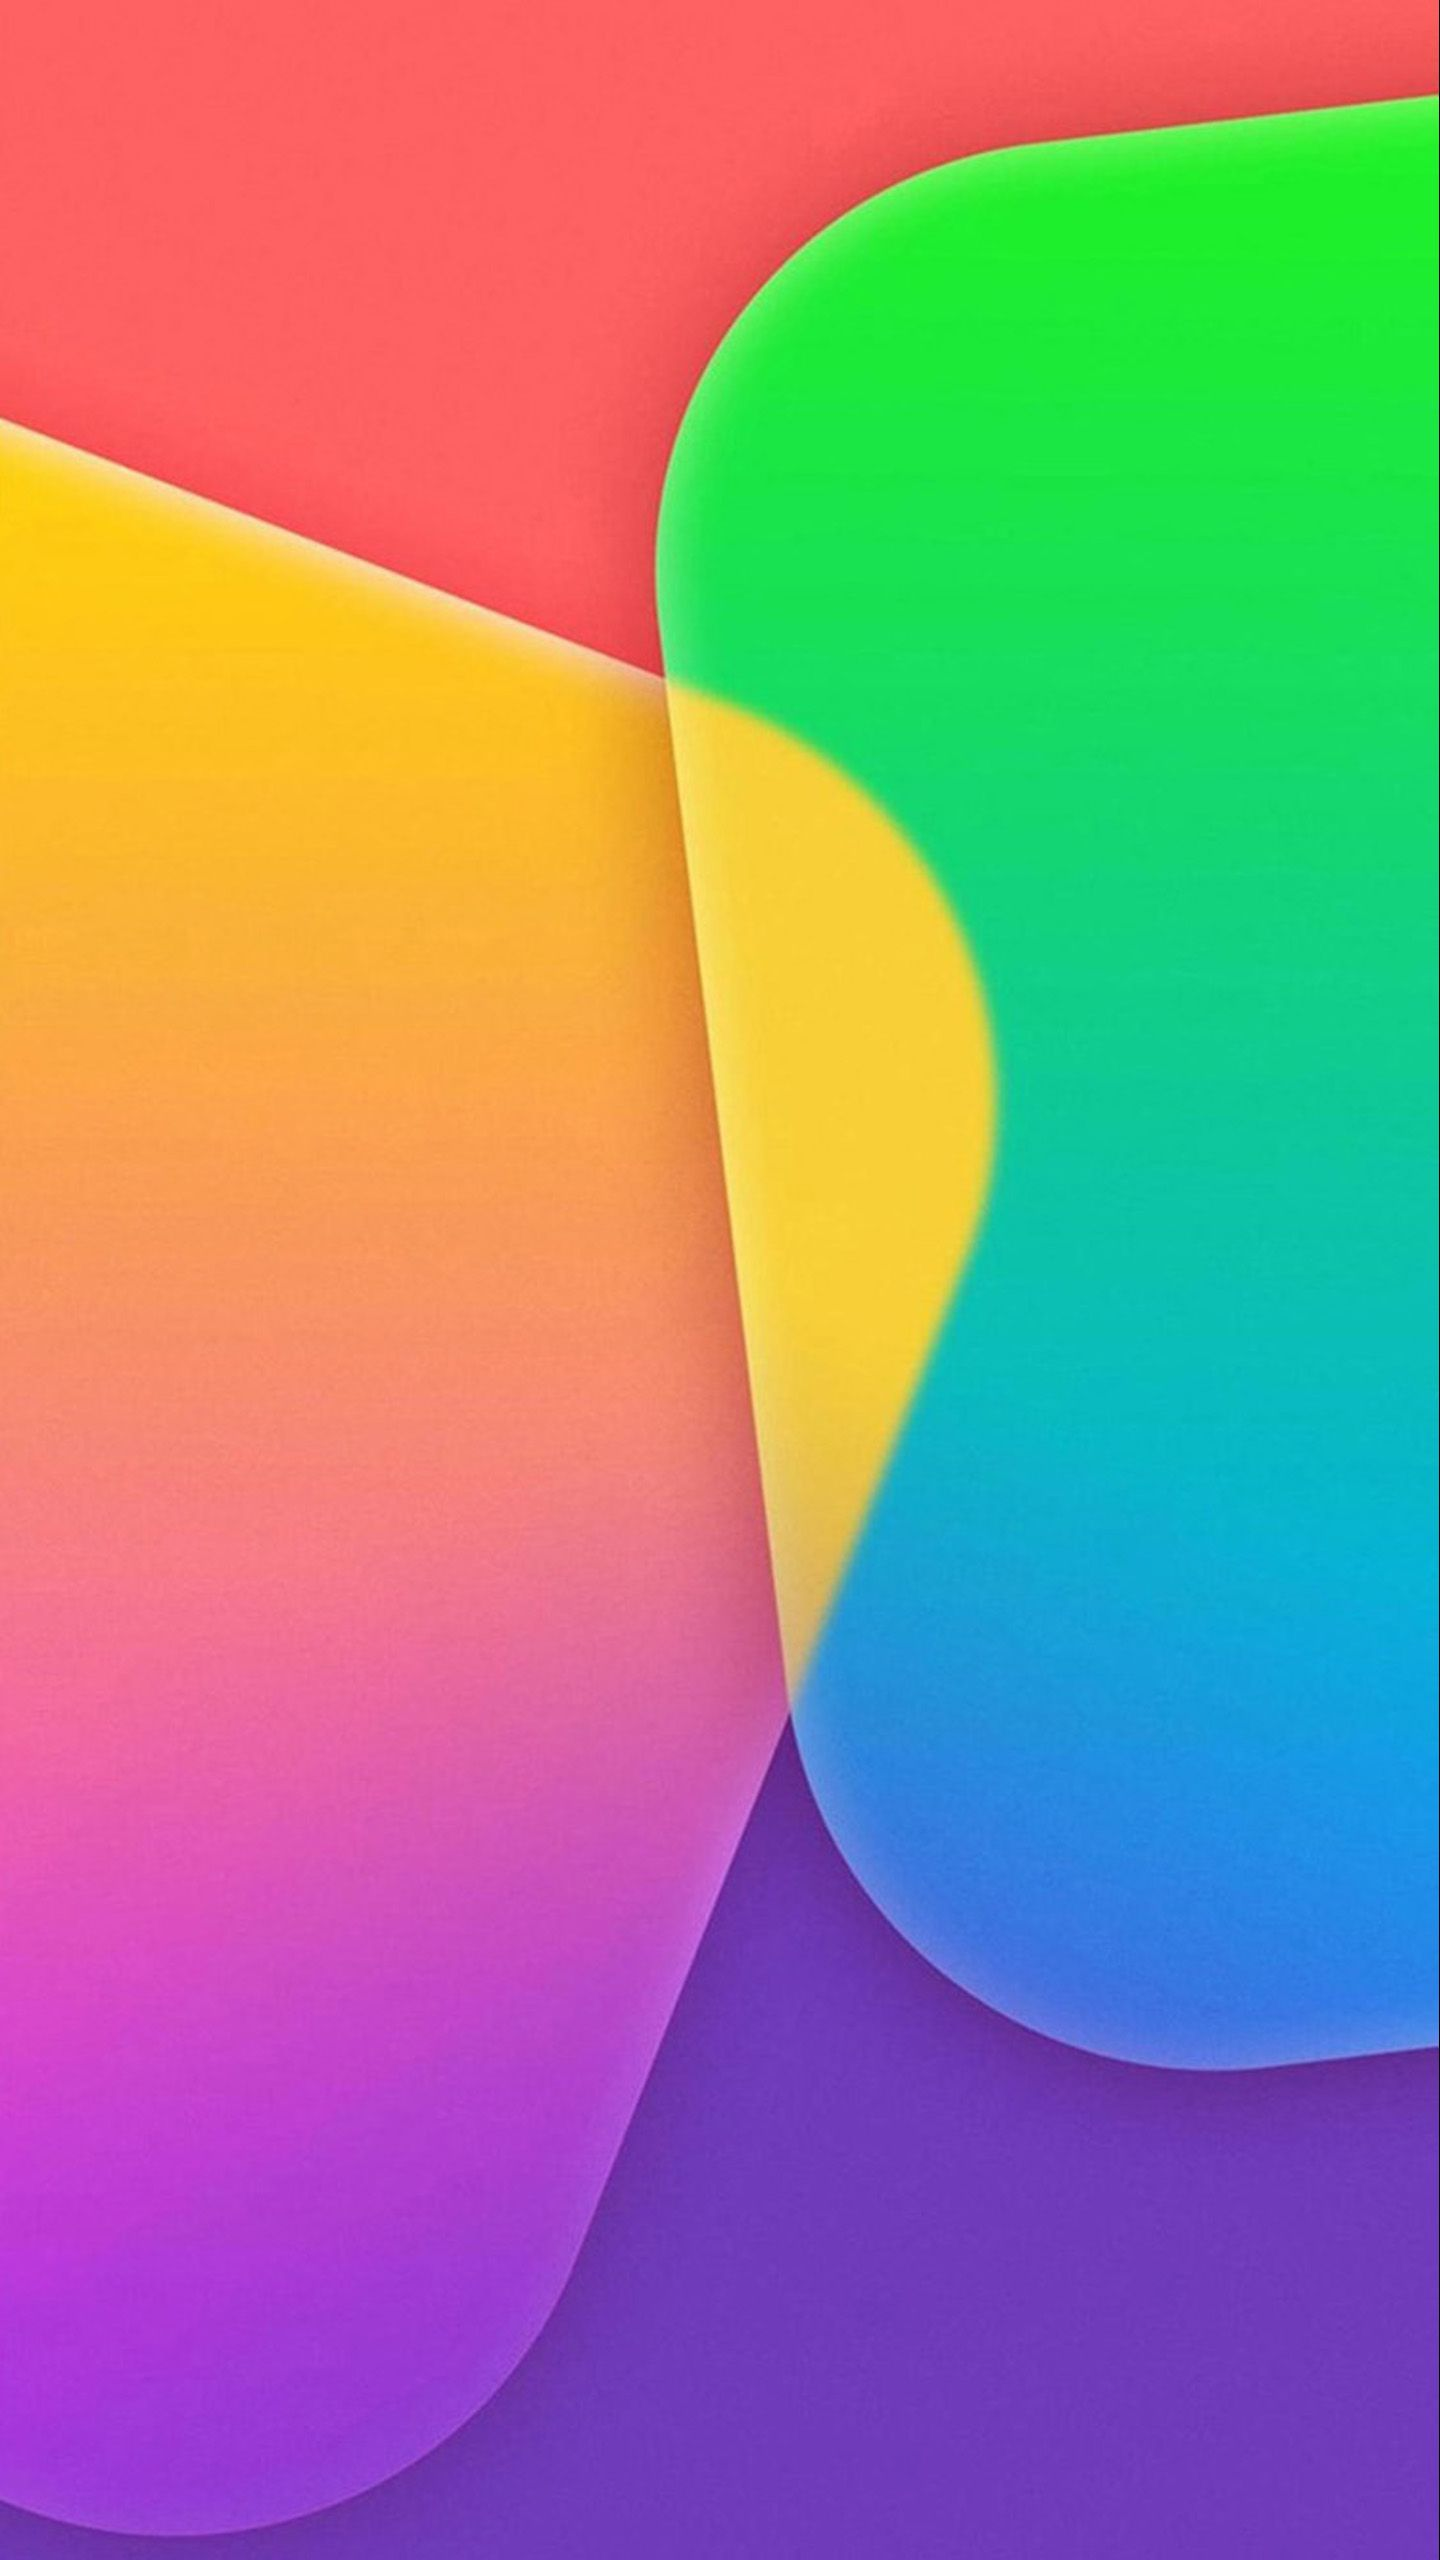 Simple Hd Wallpapers And Backgrounds Simple Iphone Wallpaper Iphone Wallpaper Simple Wallpapers